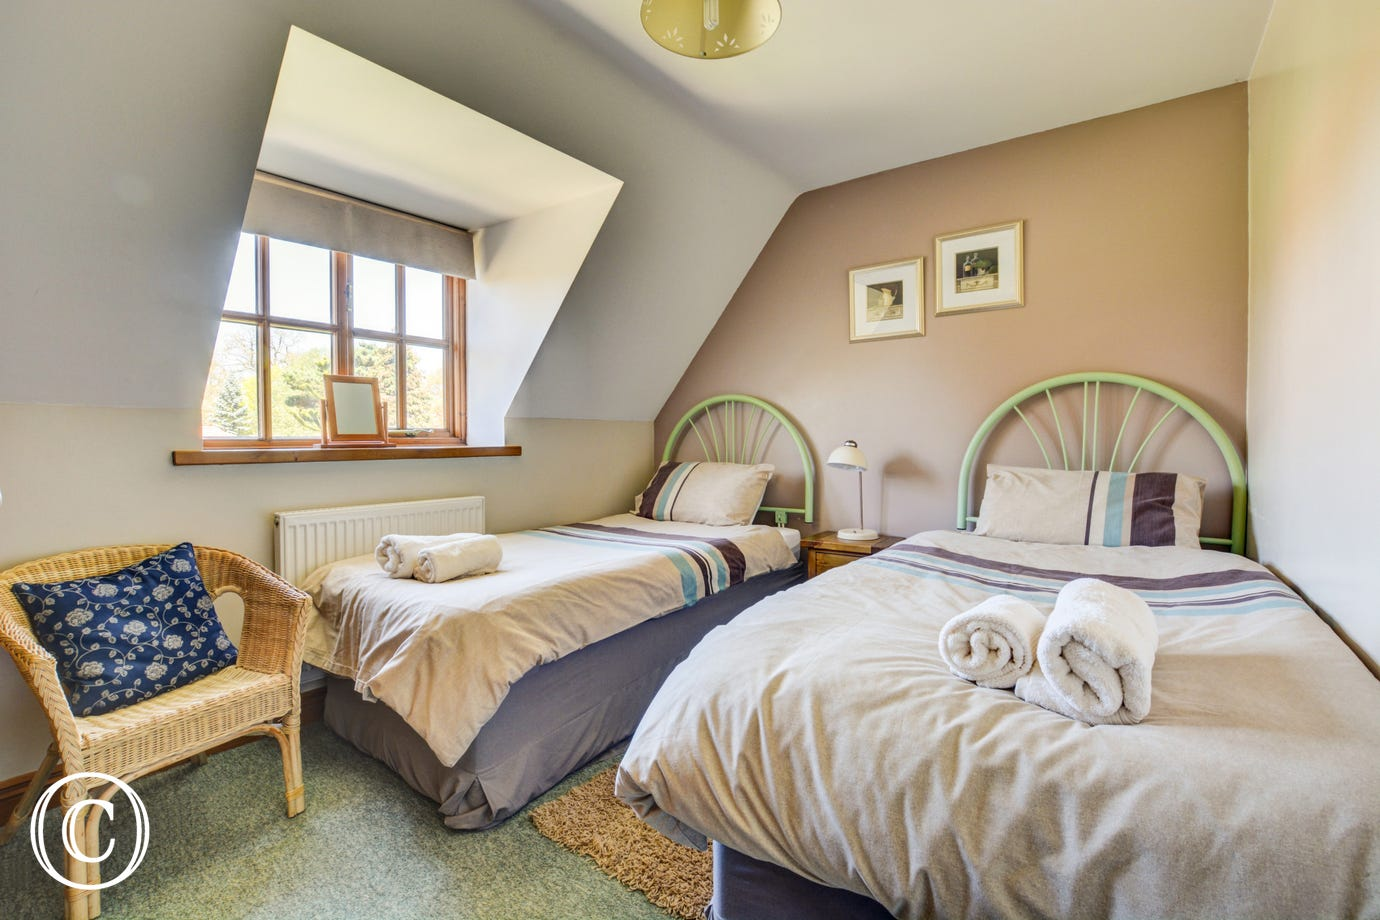 A cosy twin bedded room, ideal for children